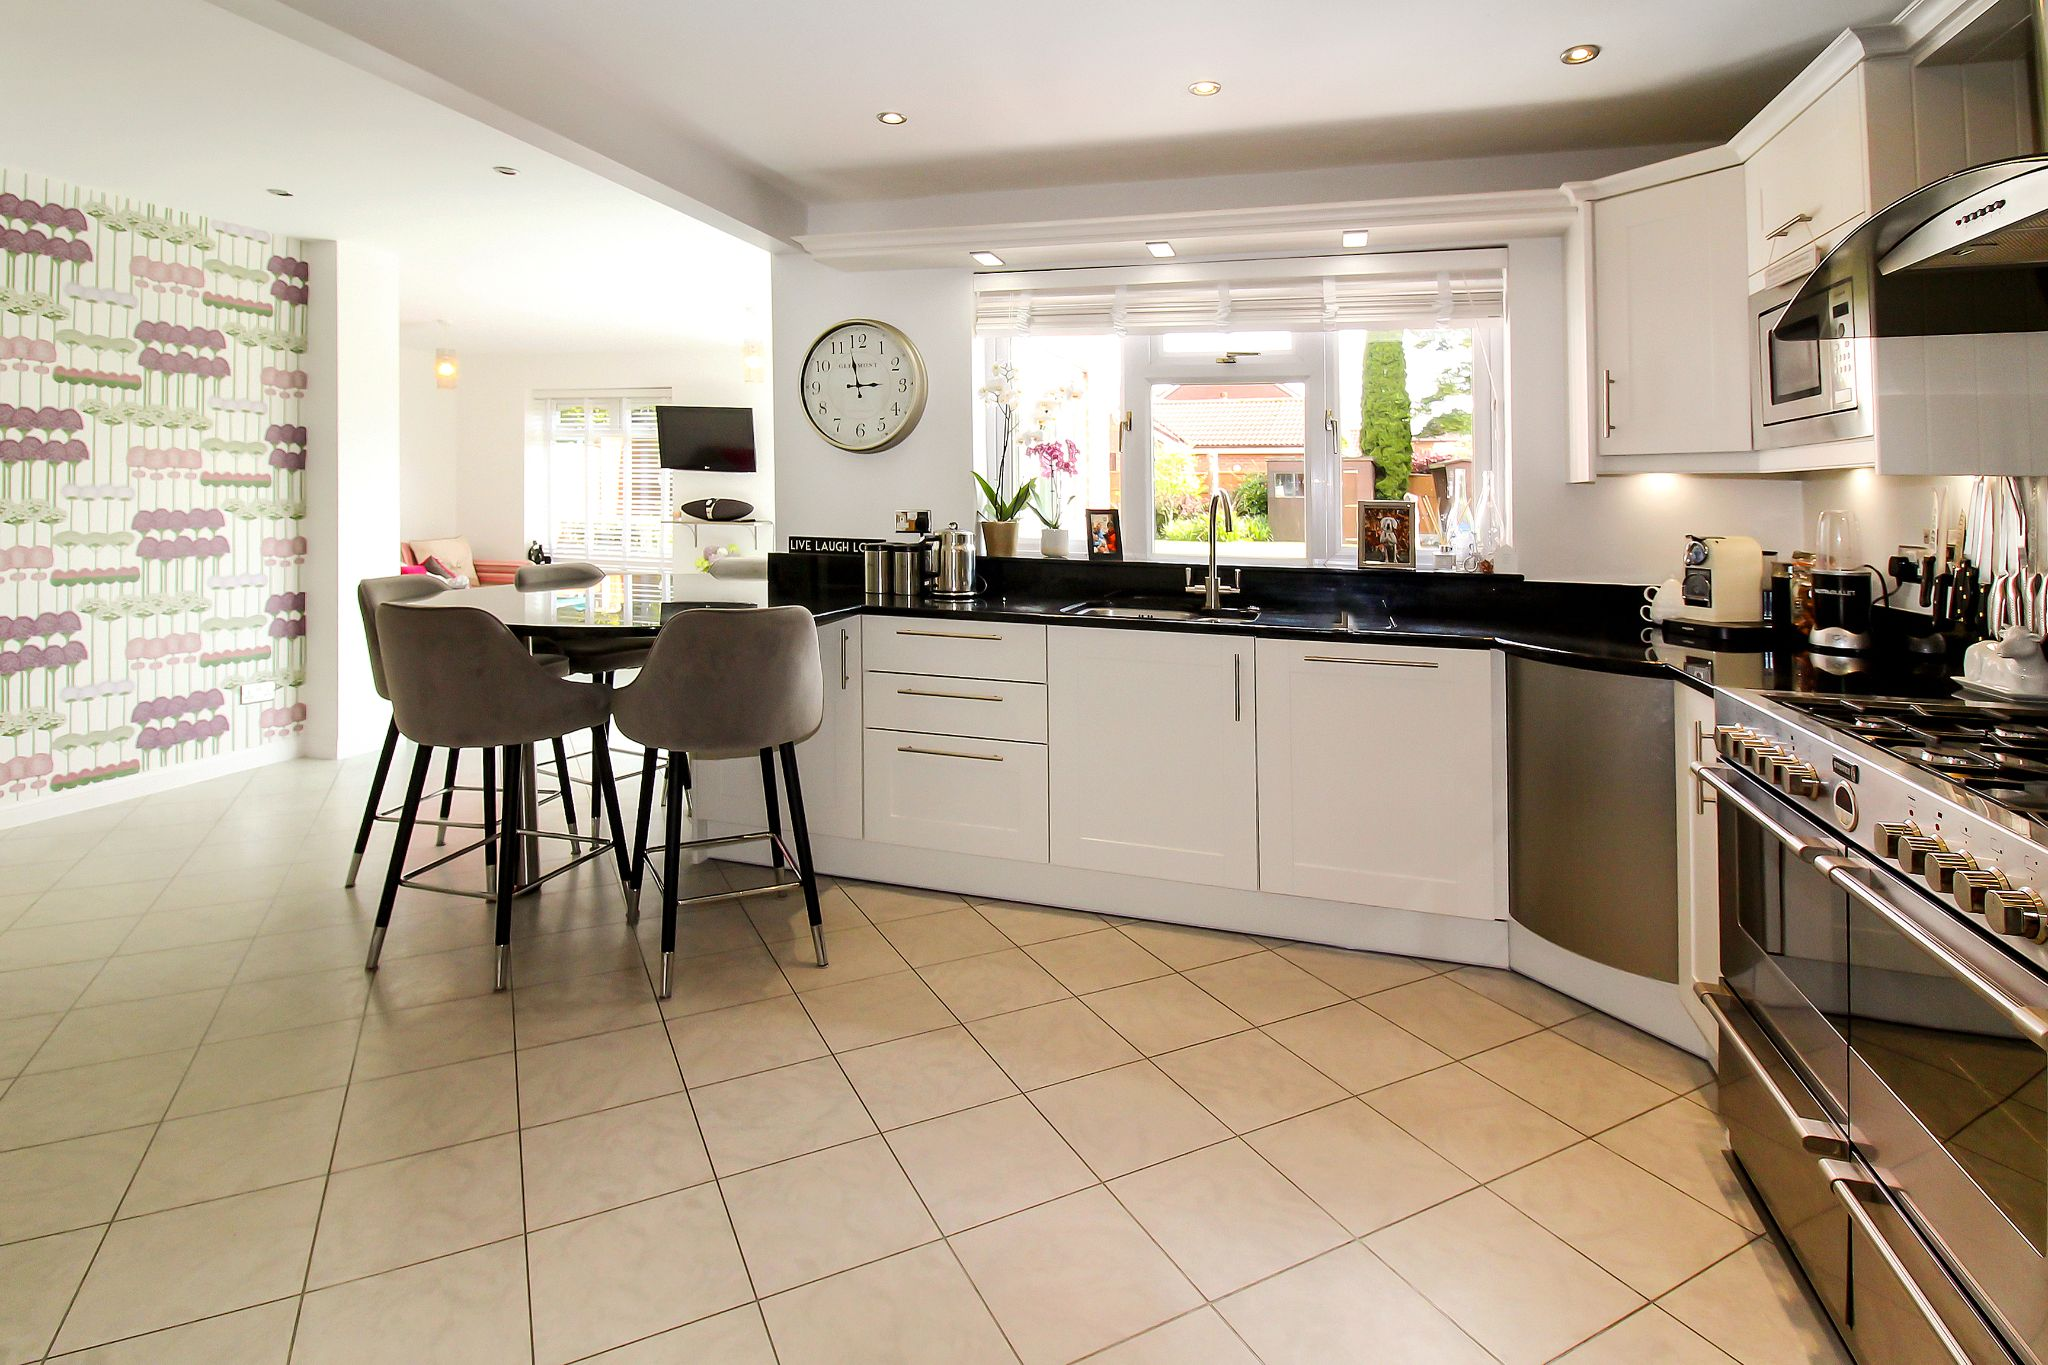 5 bedroom detached house SSTC in Solihull - Photograph 4.